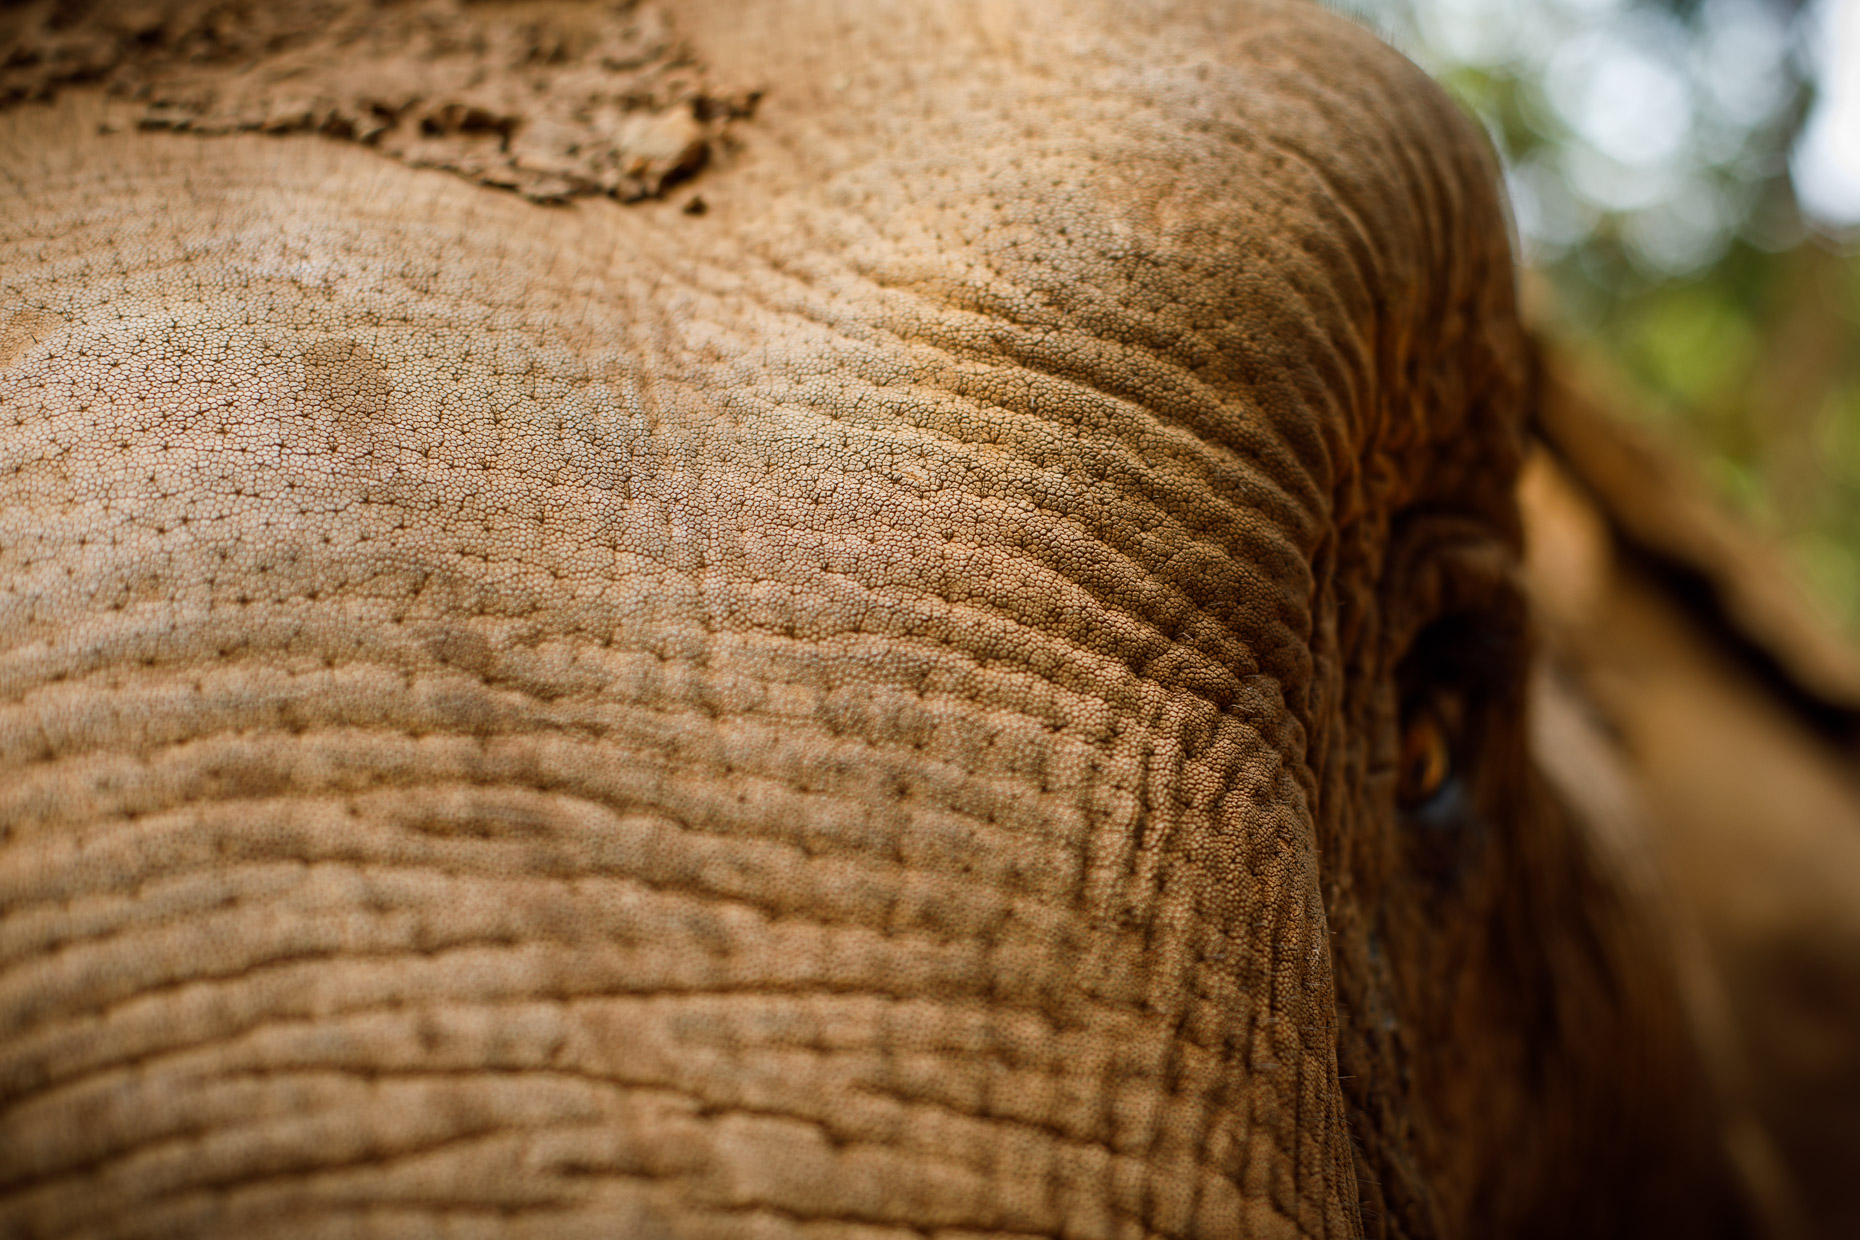 Detail of an elephant